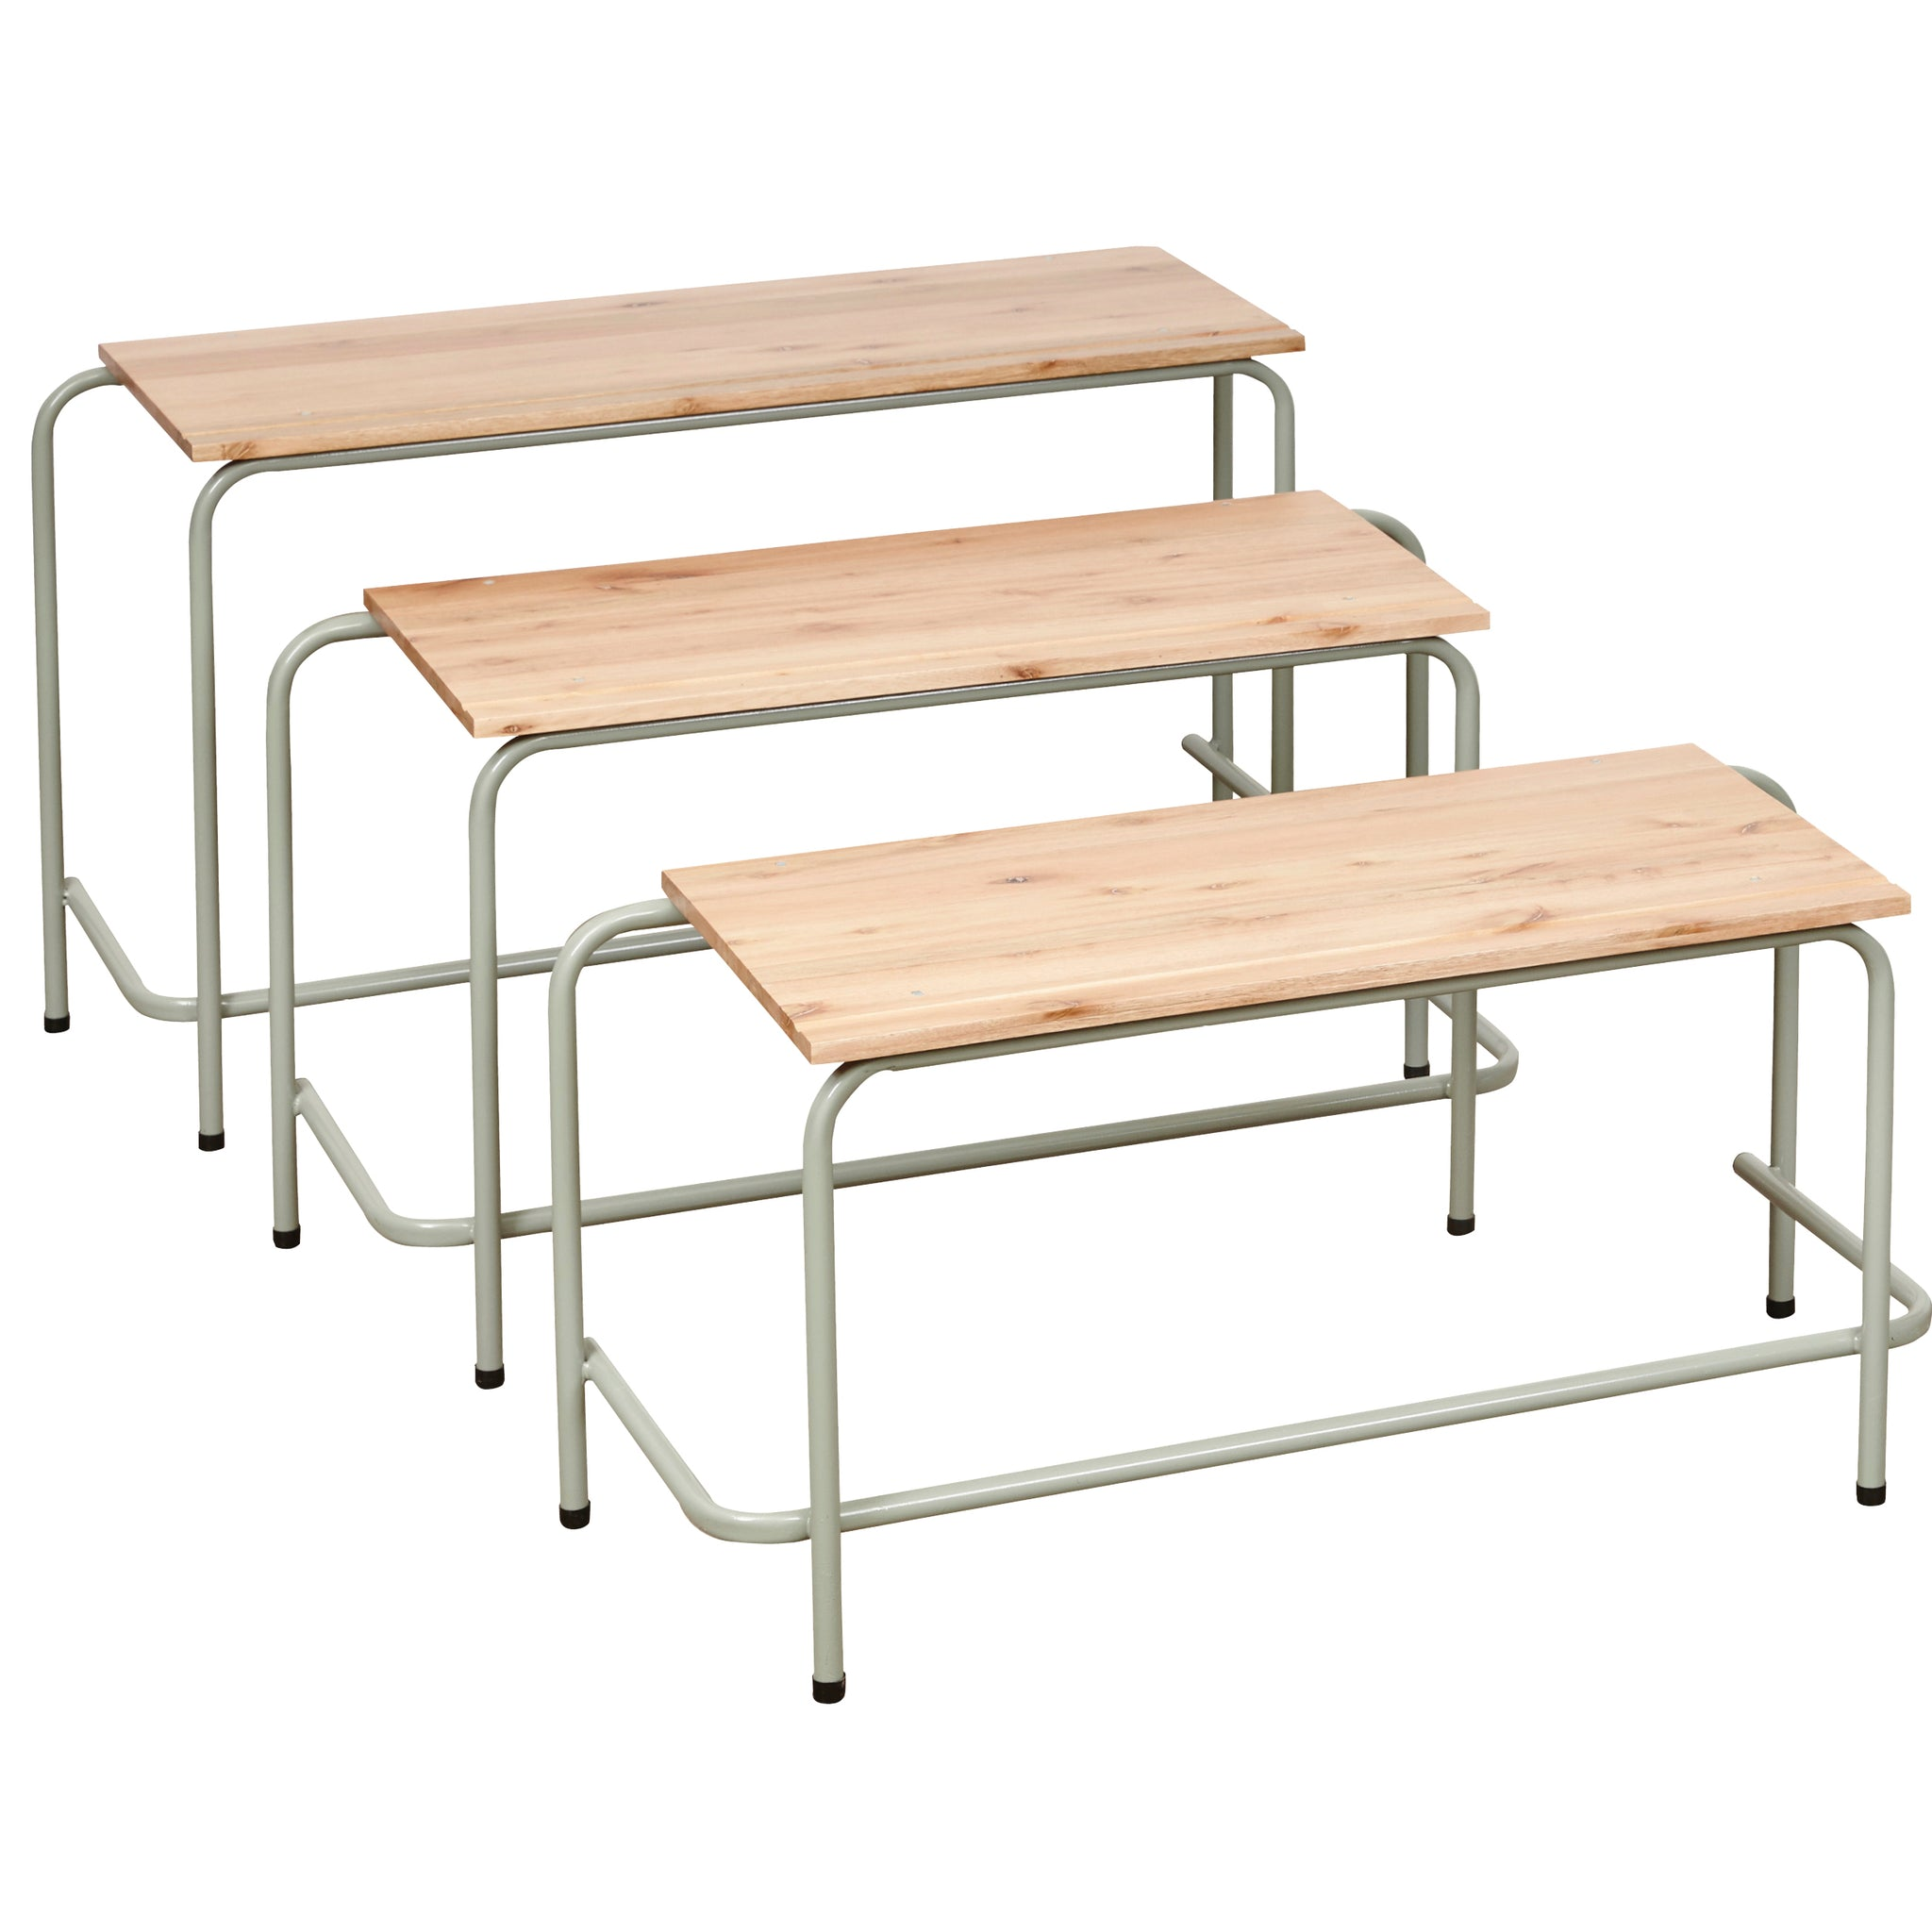 Hedcor School Table Double Saligna